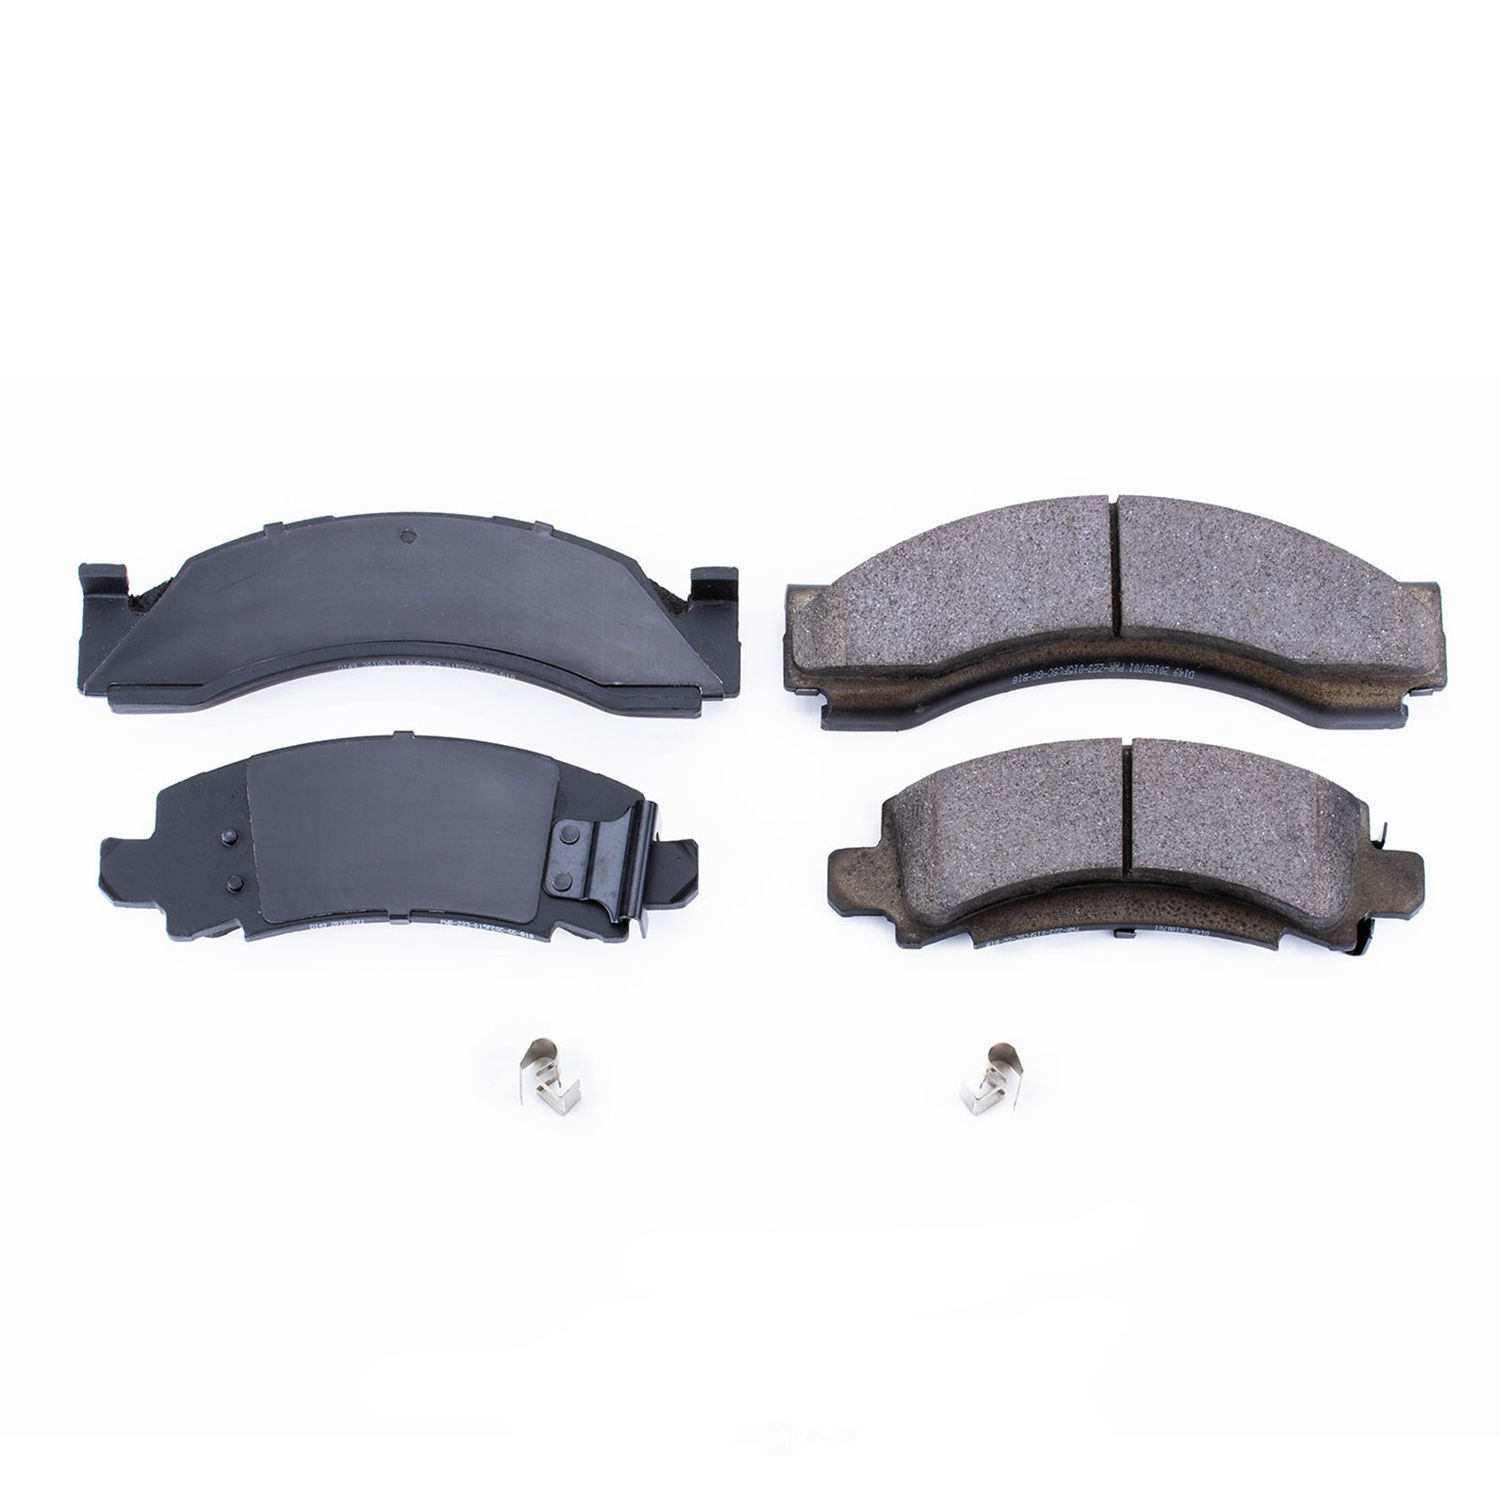 [Brake Pad Install 1995 Chevrolet G Series G10]